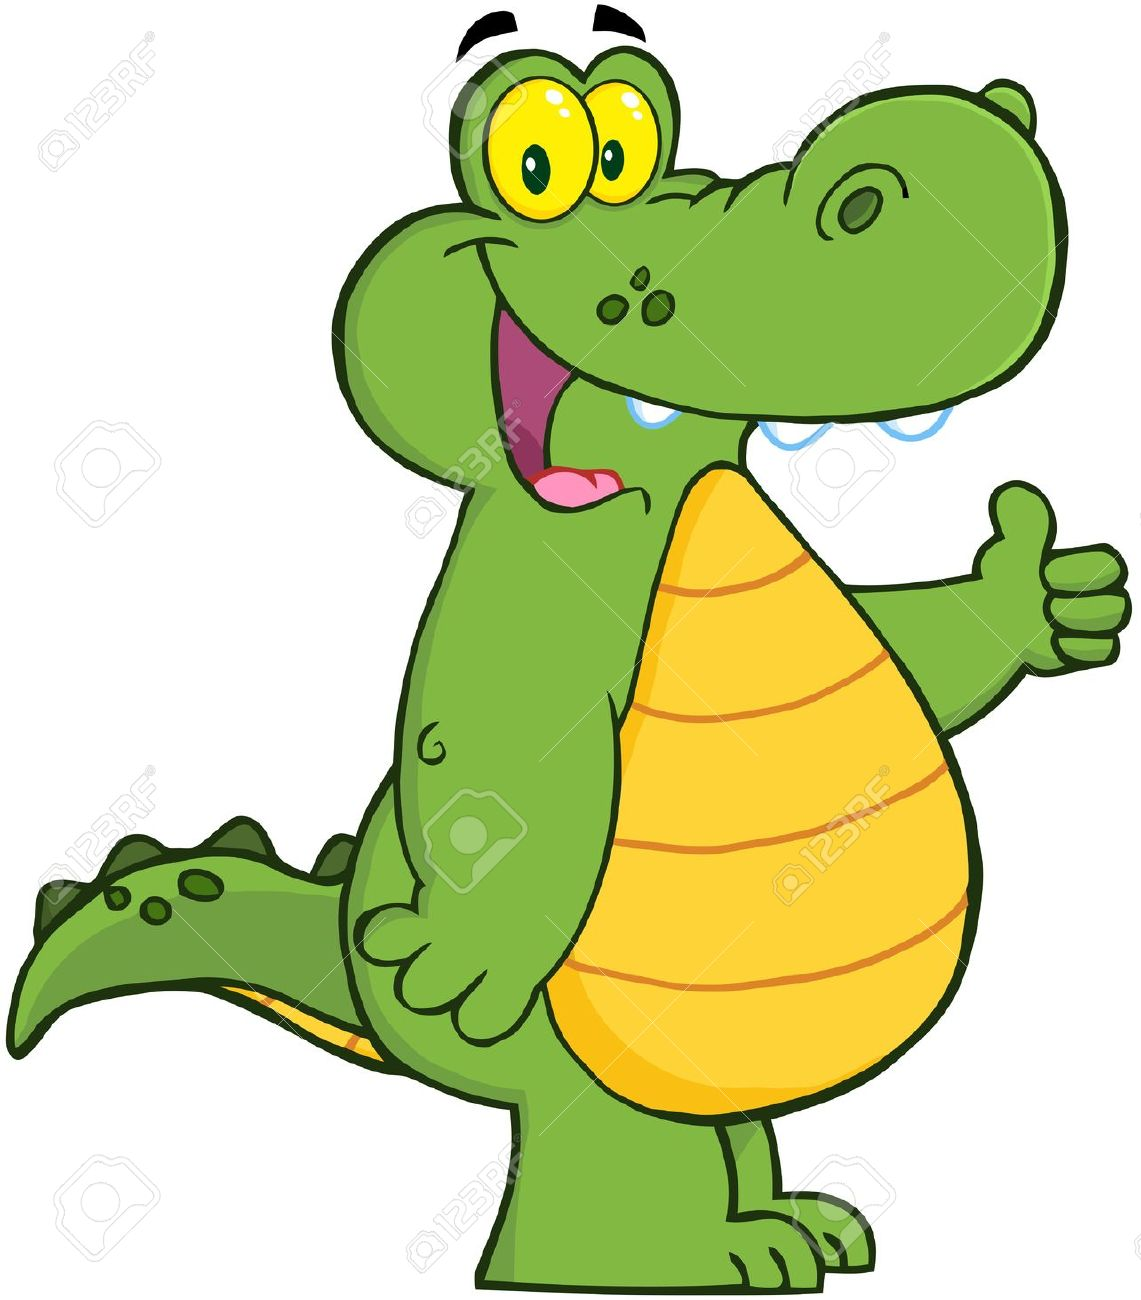 1141x1300 Crocodile Clipart Smile